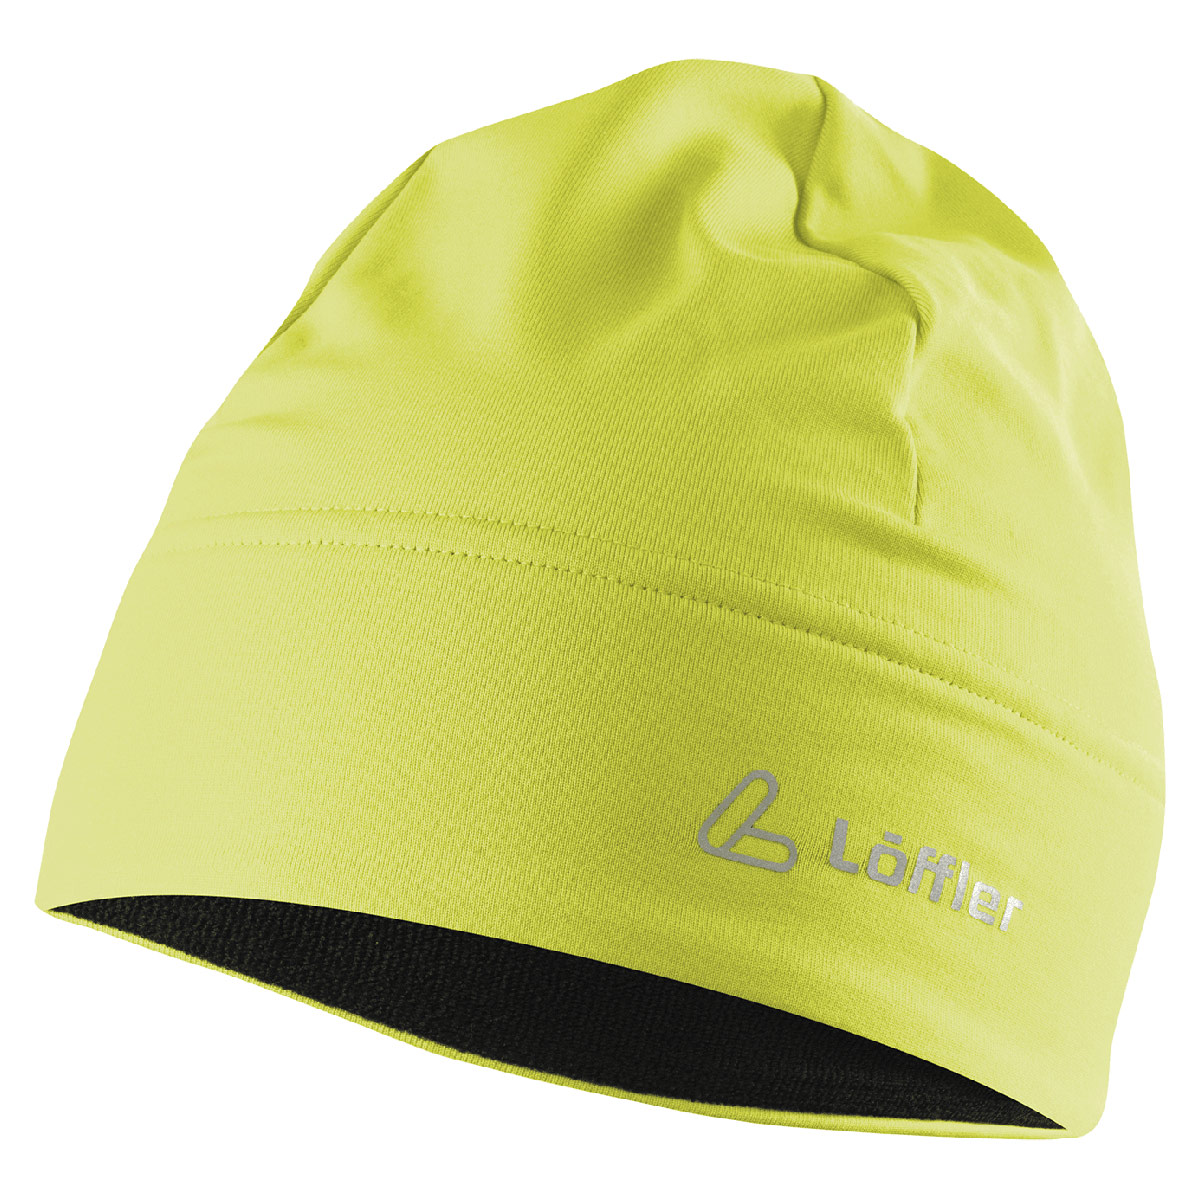 super popular 51364 ac498 Löffler Mono Mütze TVL - Beanies - Yellow